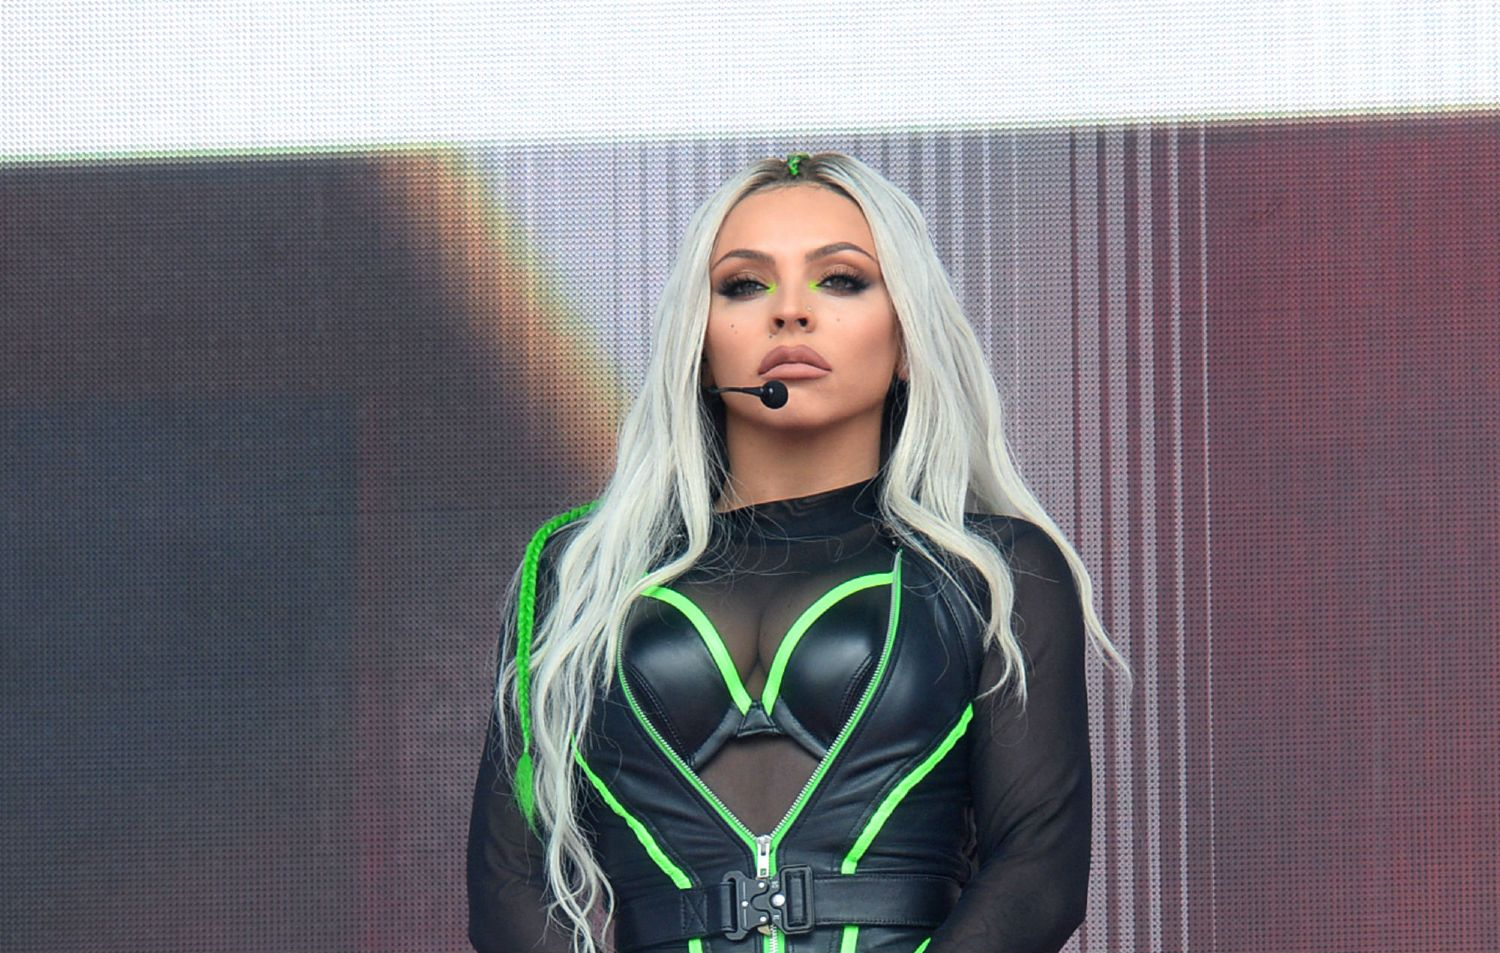 Jesy Nelson GettyImages 1151794388